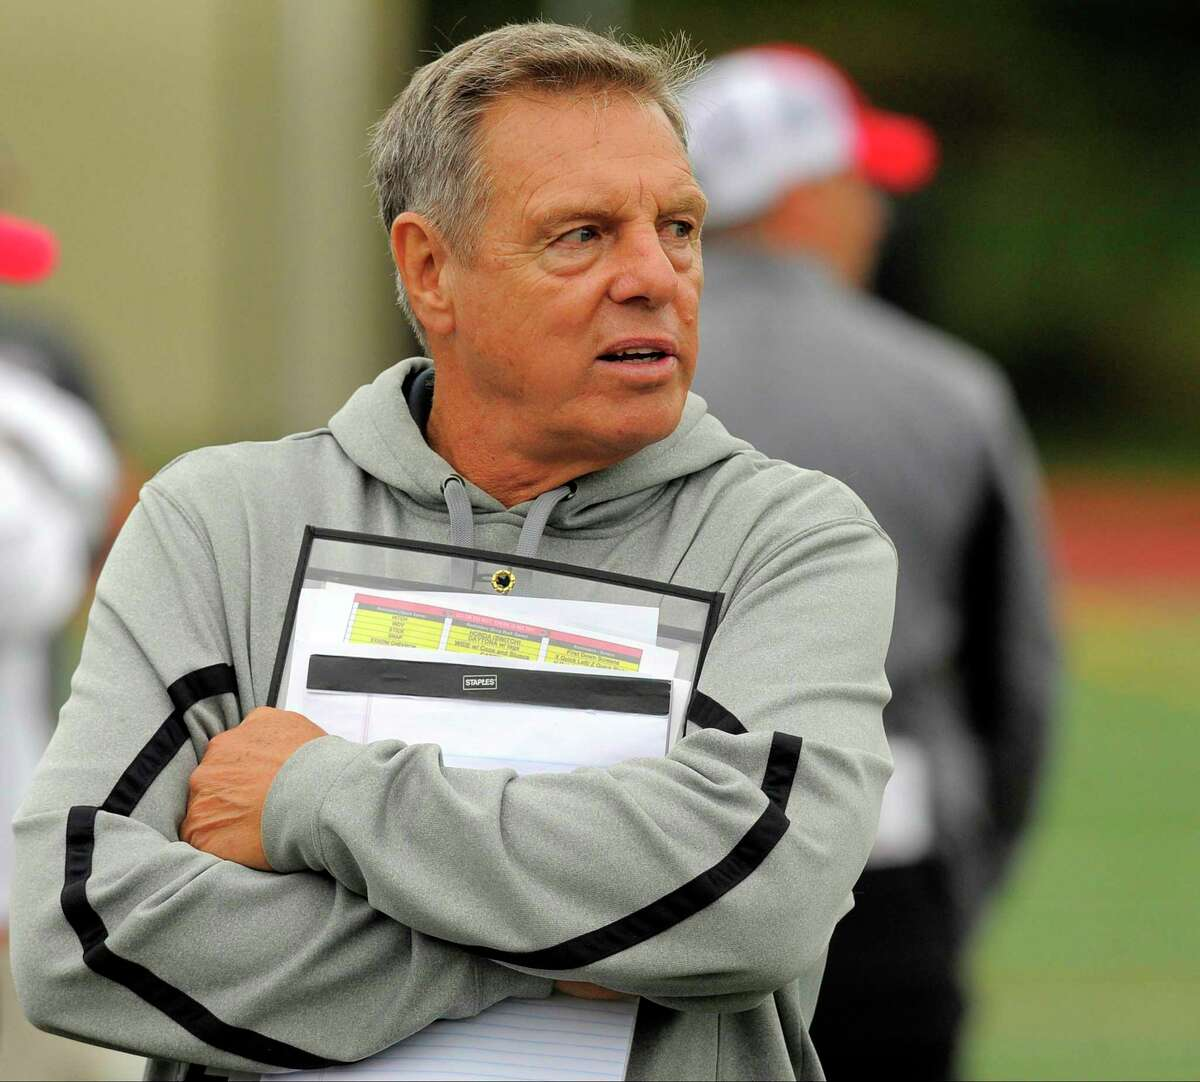 New Canaan coach Lou Marinelli follows the action of a football game at Westhill High School's J. Walter Kennedy Stadium in Stamford, Conn. on Saturday, Oct. 1, 2016. New Canaan defeated Westhill 35-7.